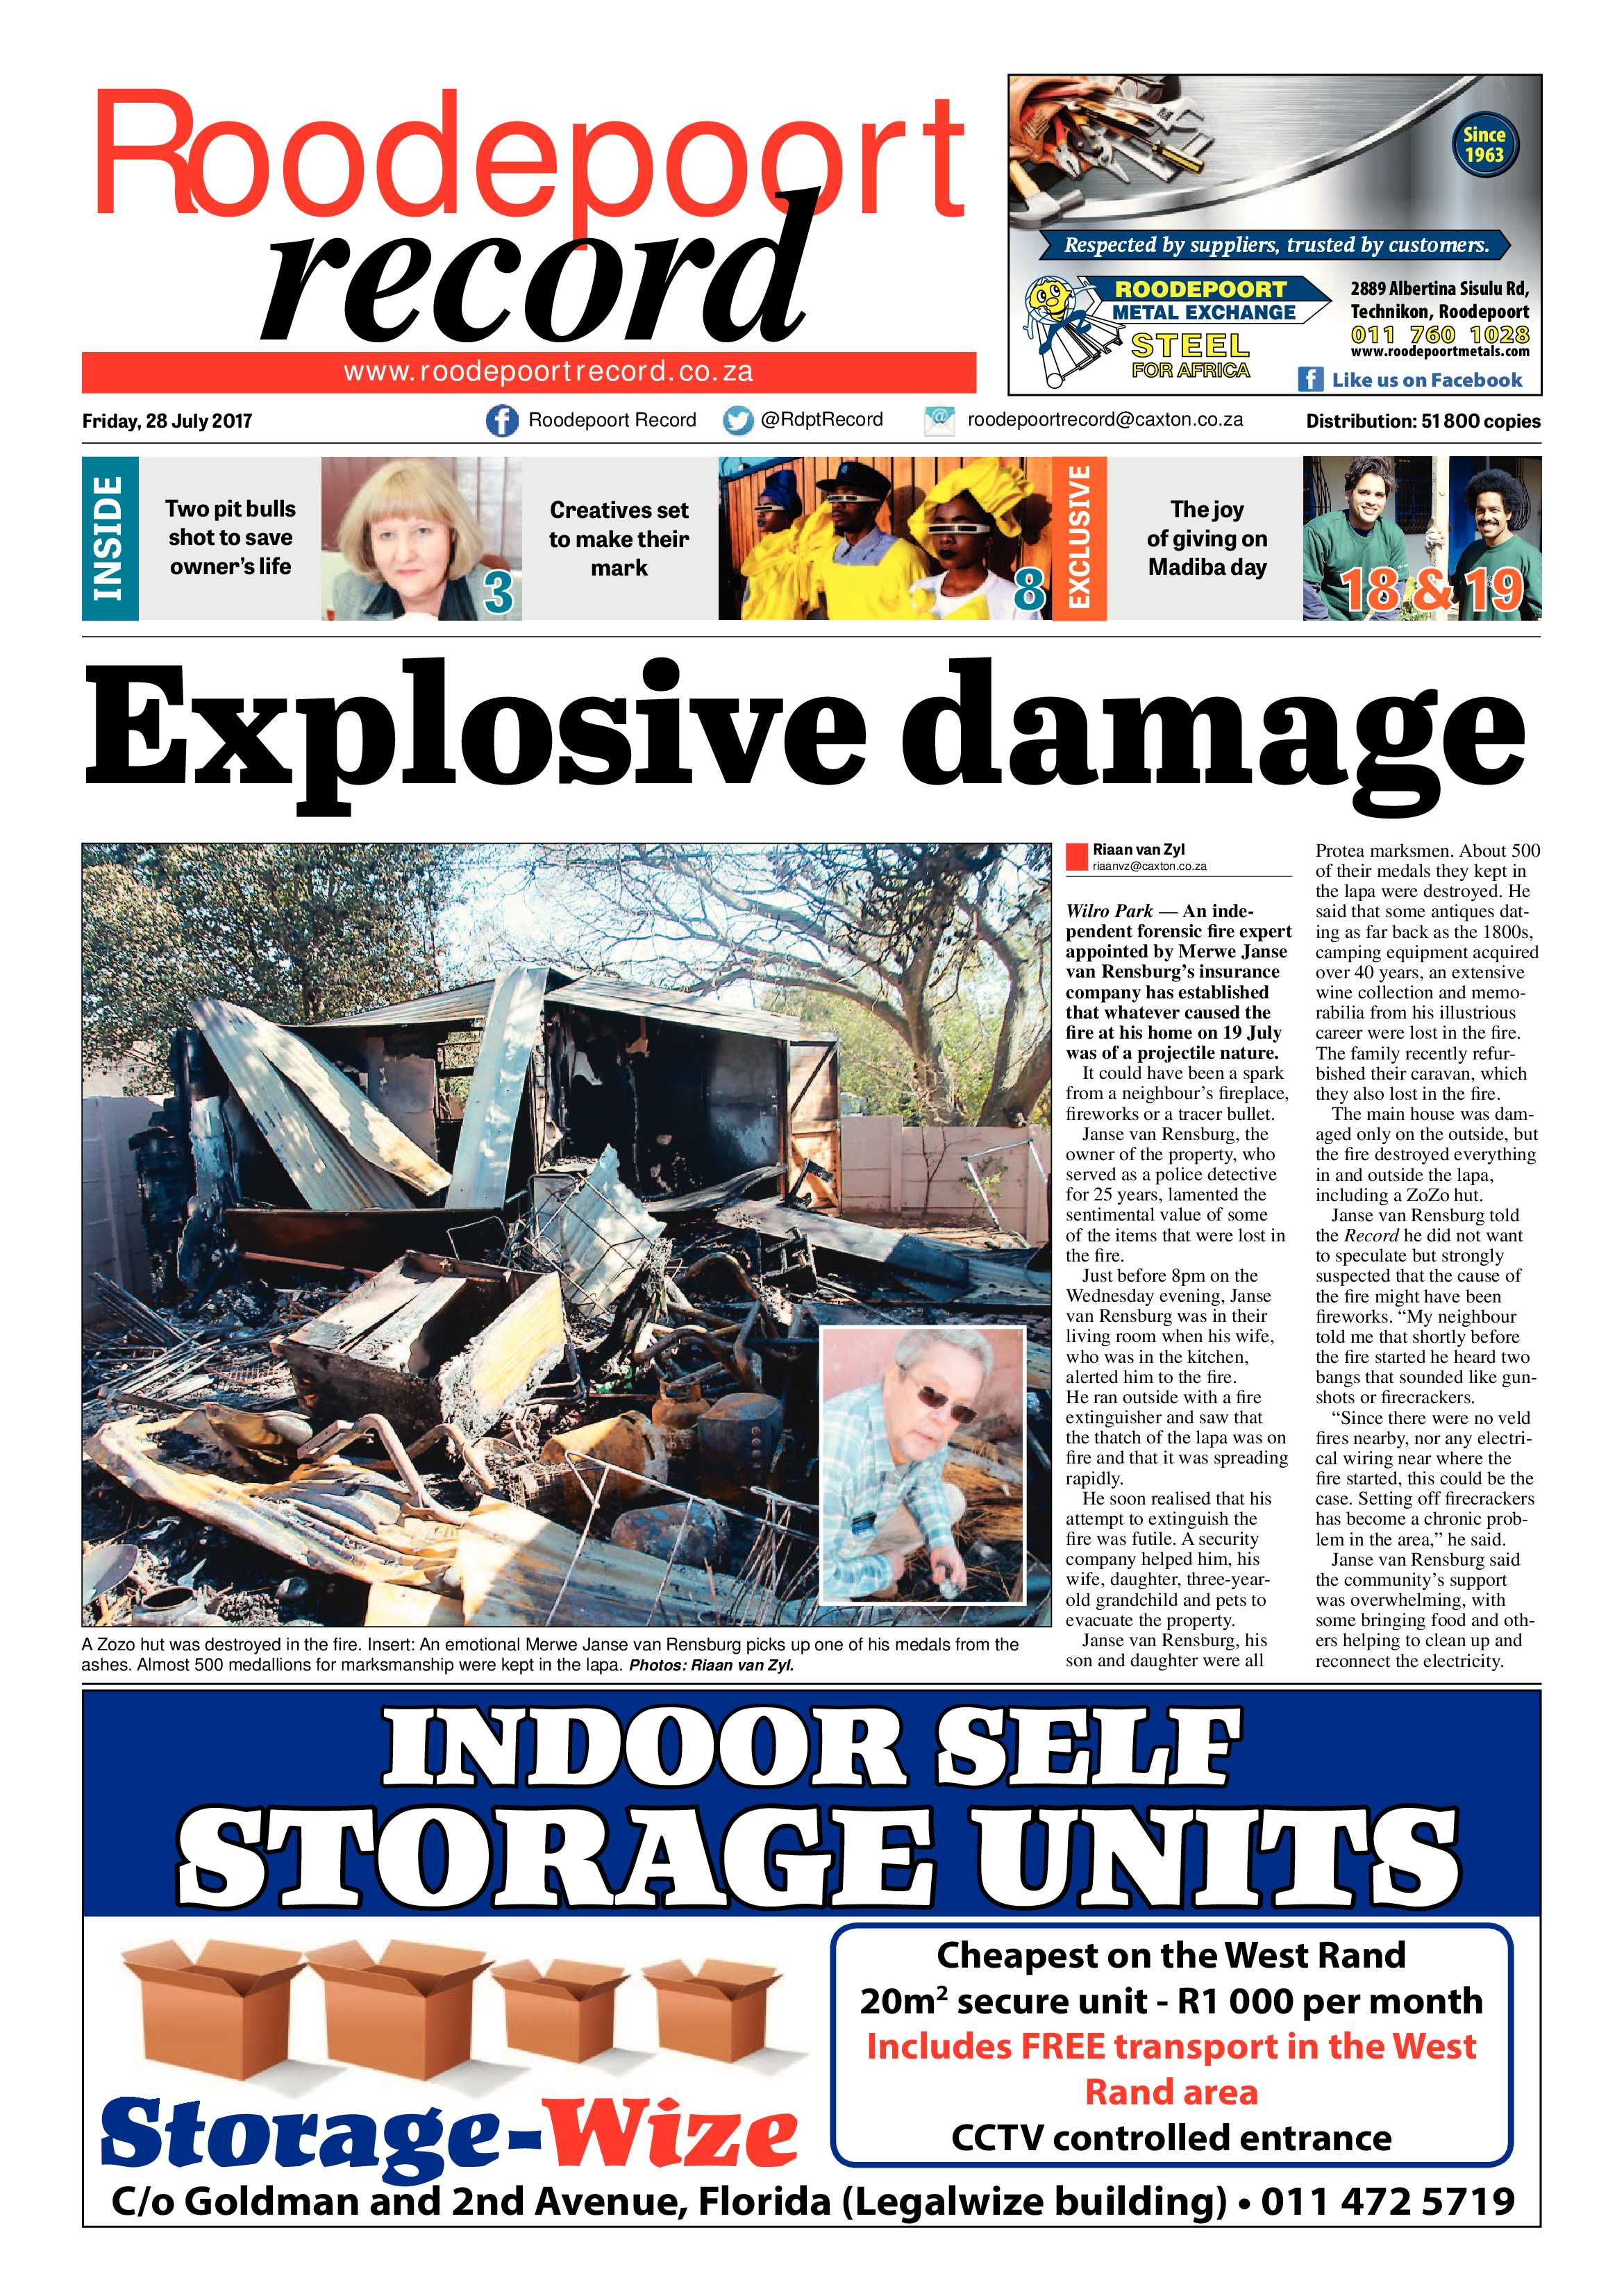 roodepoort-record-28-july-2017-epapers-page-1